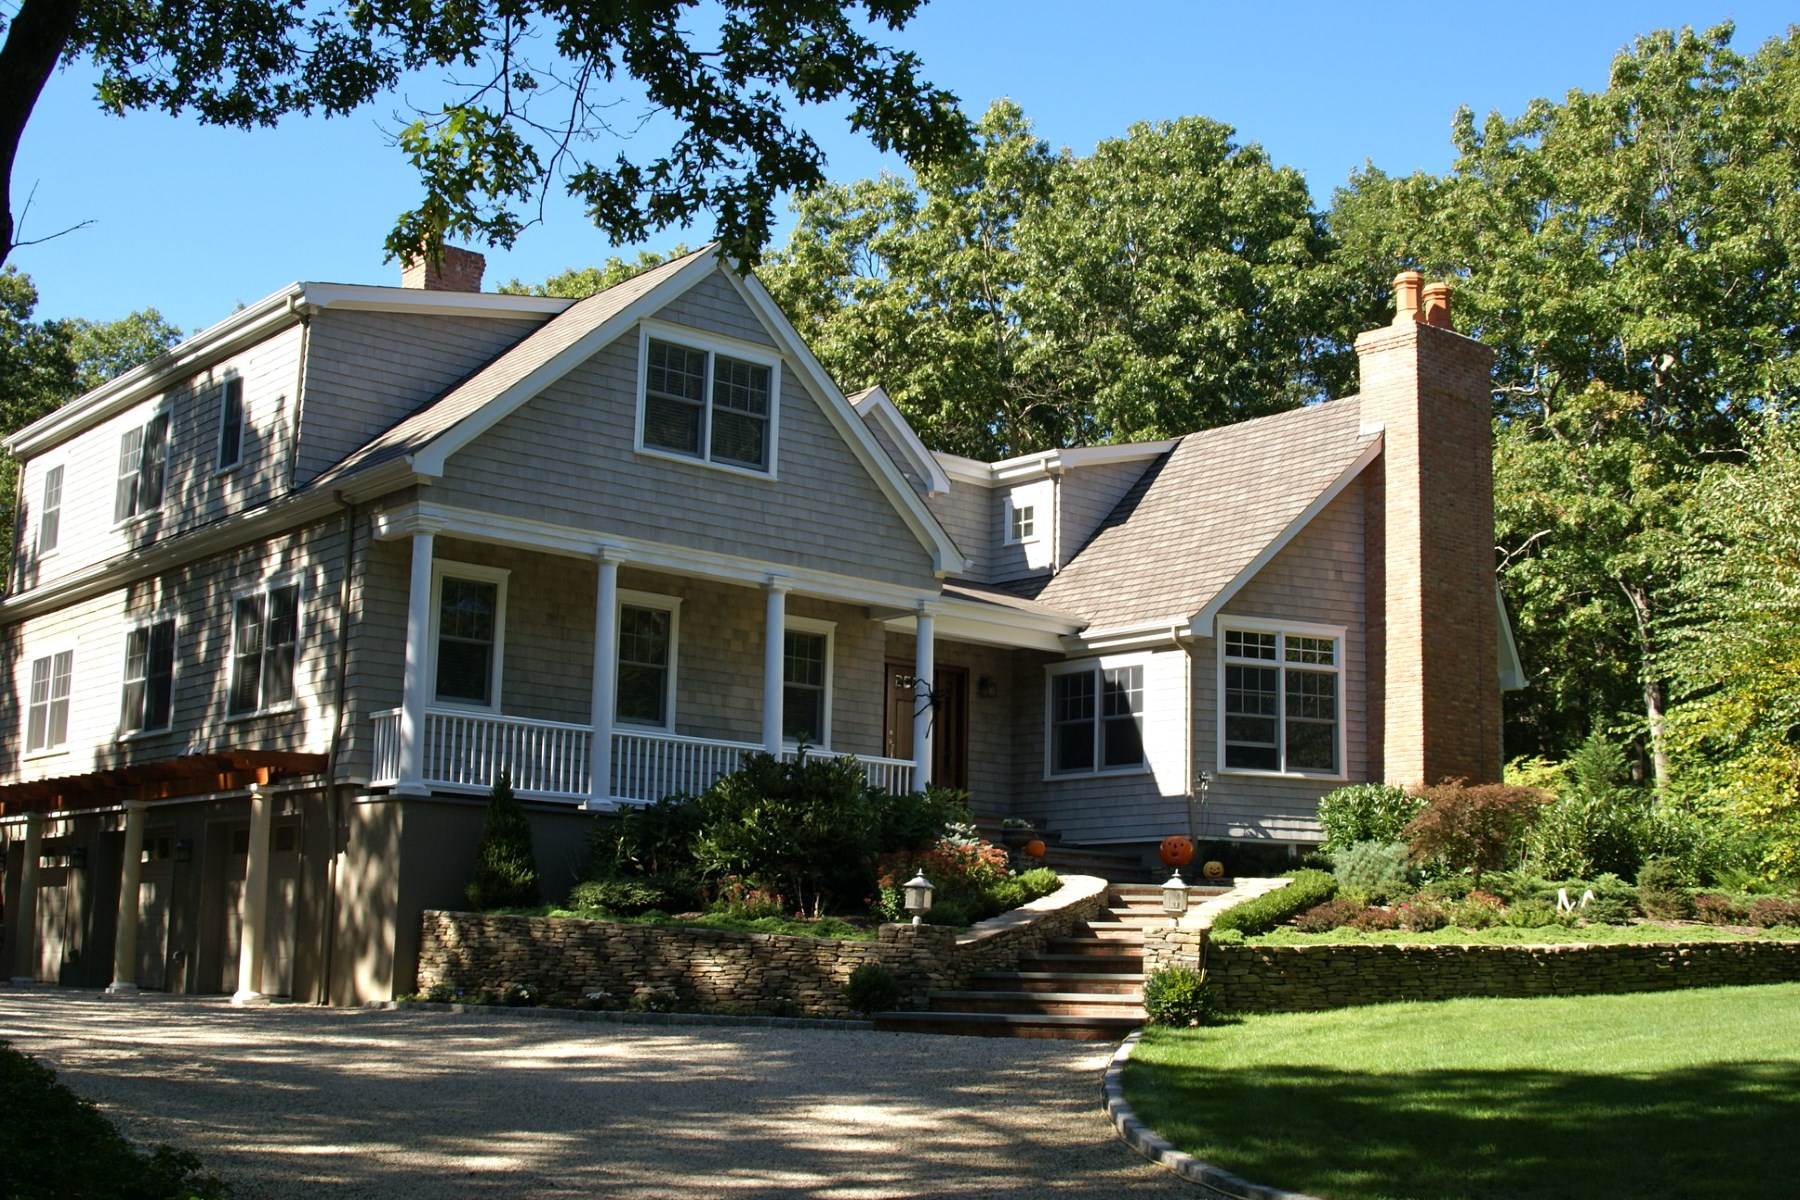 Single Family Home for Rent at Classic and Clean in Water Mill Water Mill, New York 11976 United States